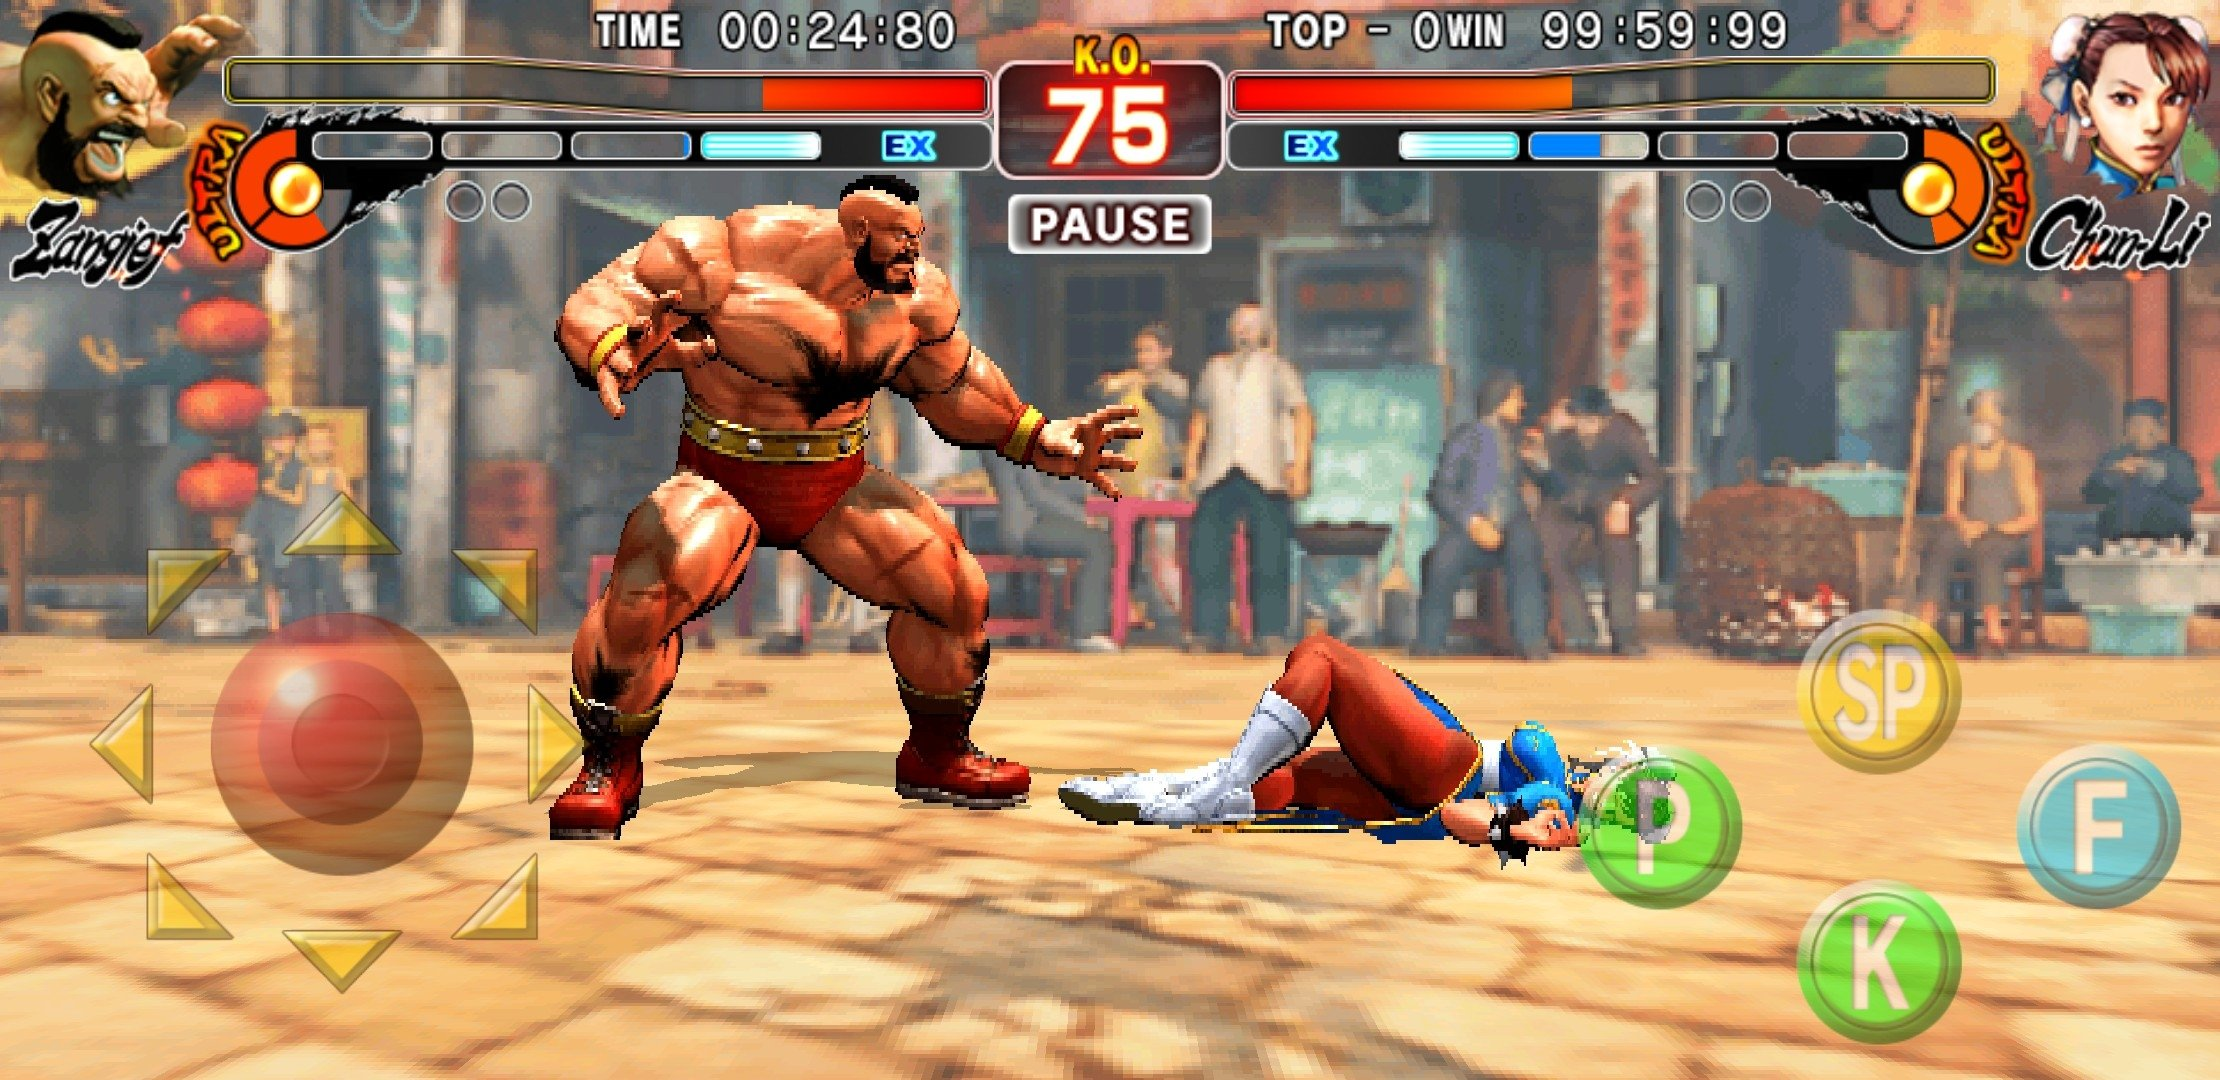 Street Fighter IV Champion Edition 1 01 01 - Download for